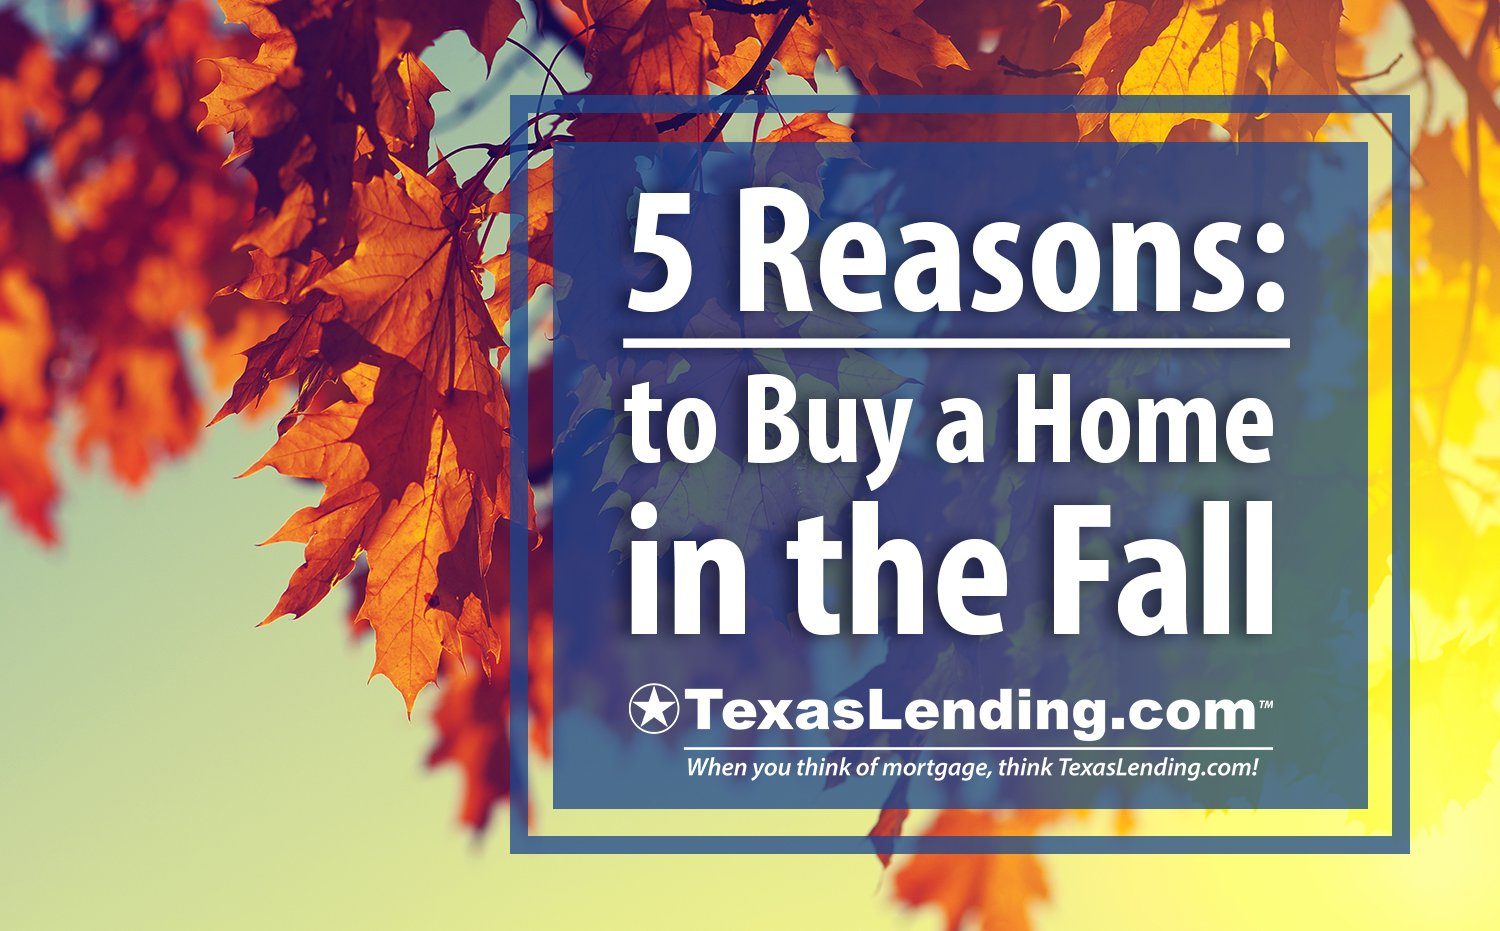 Buy a Home in the Fall